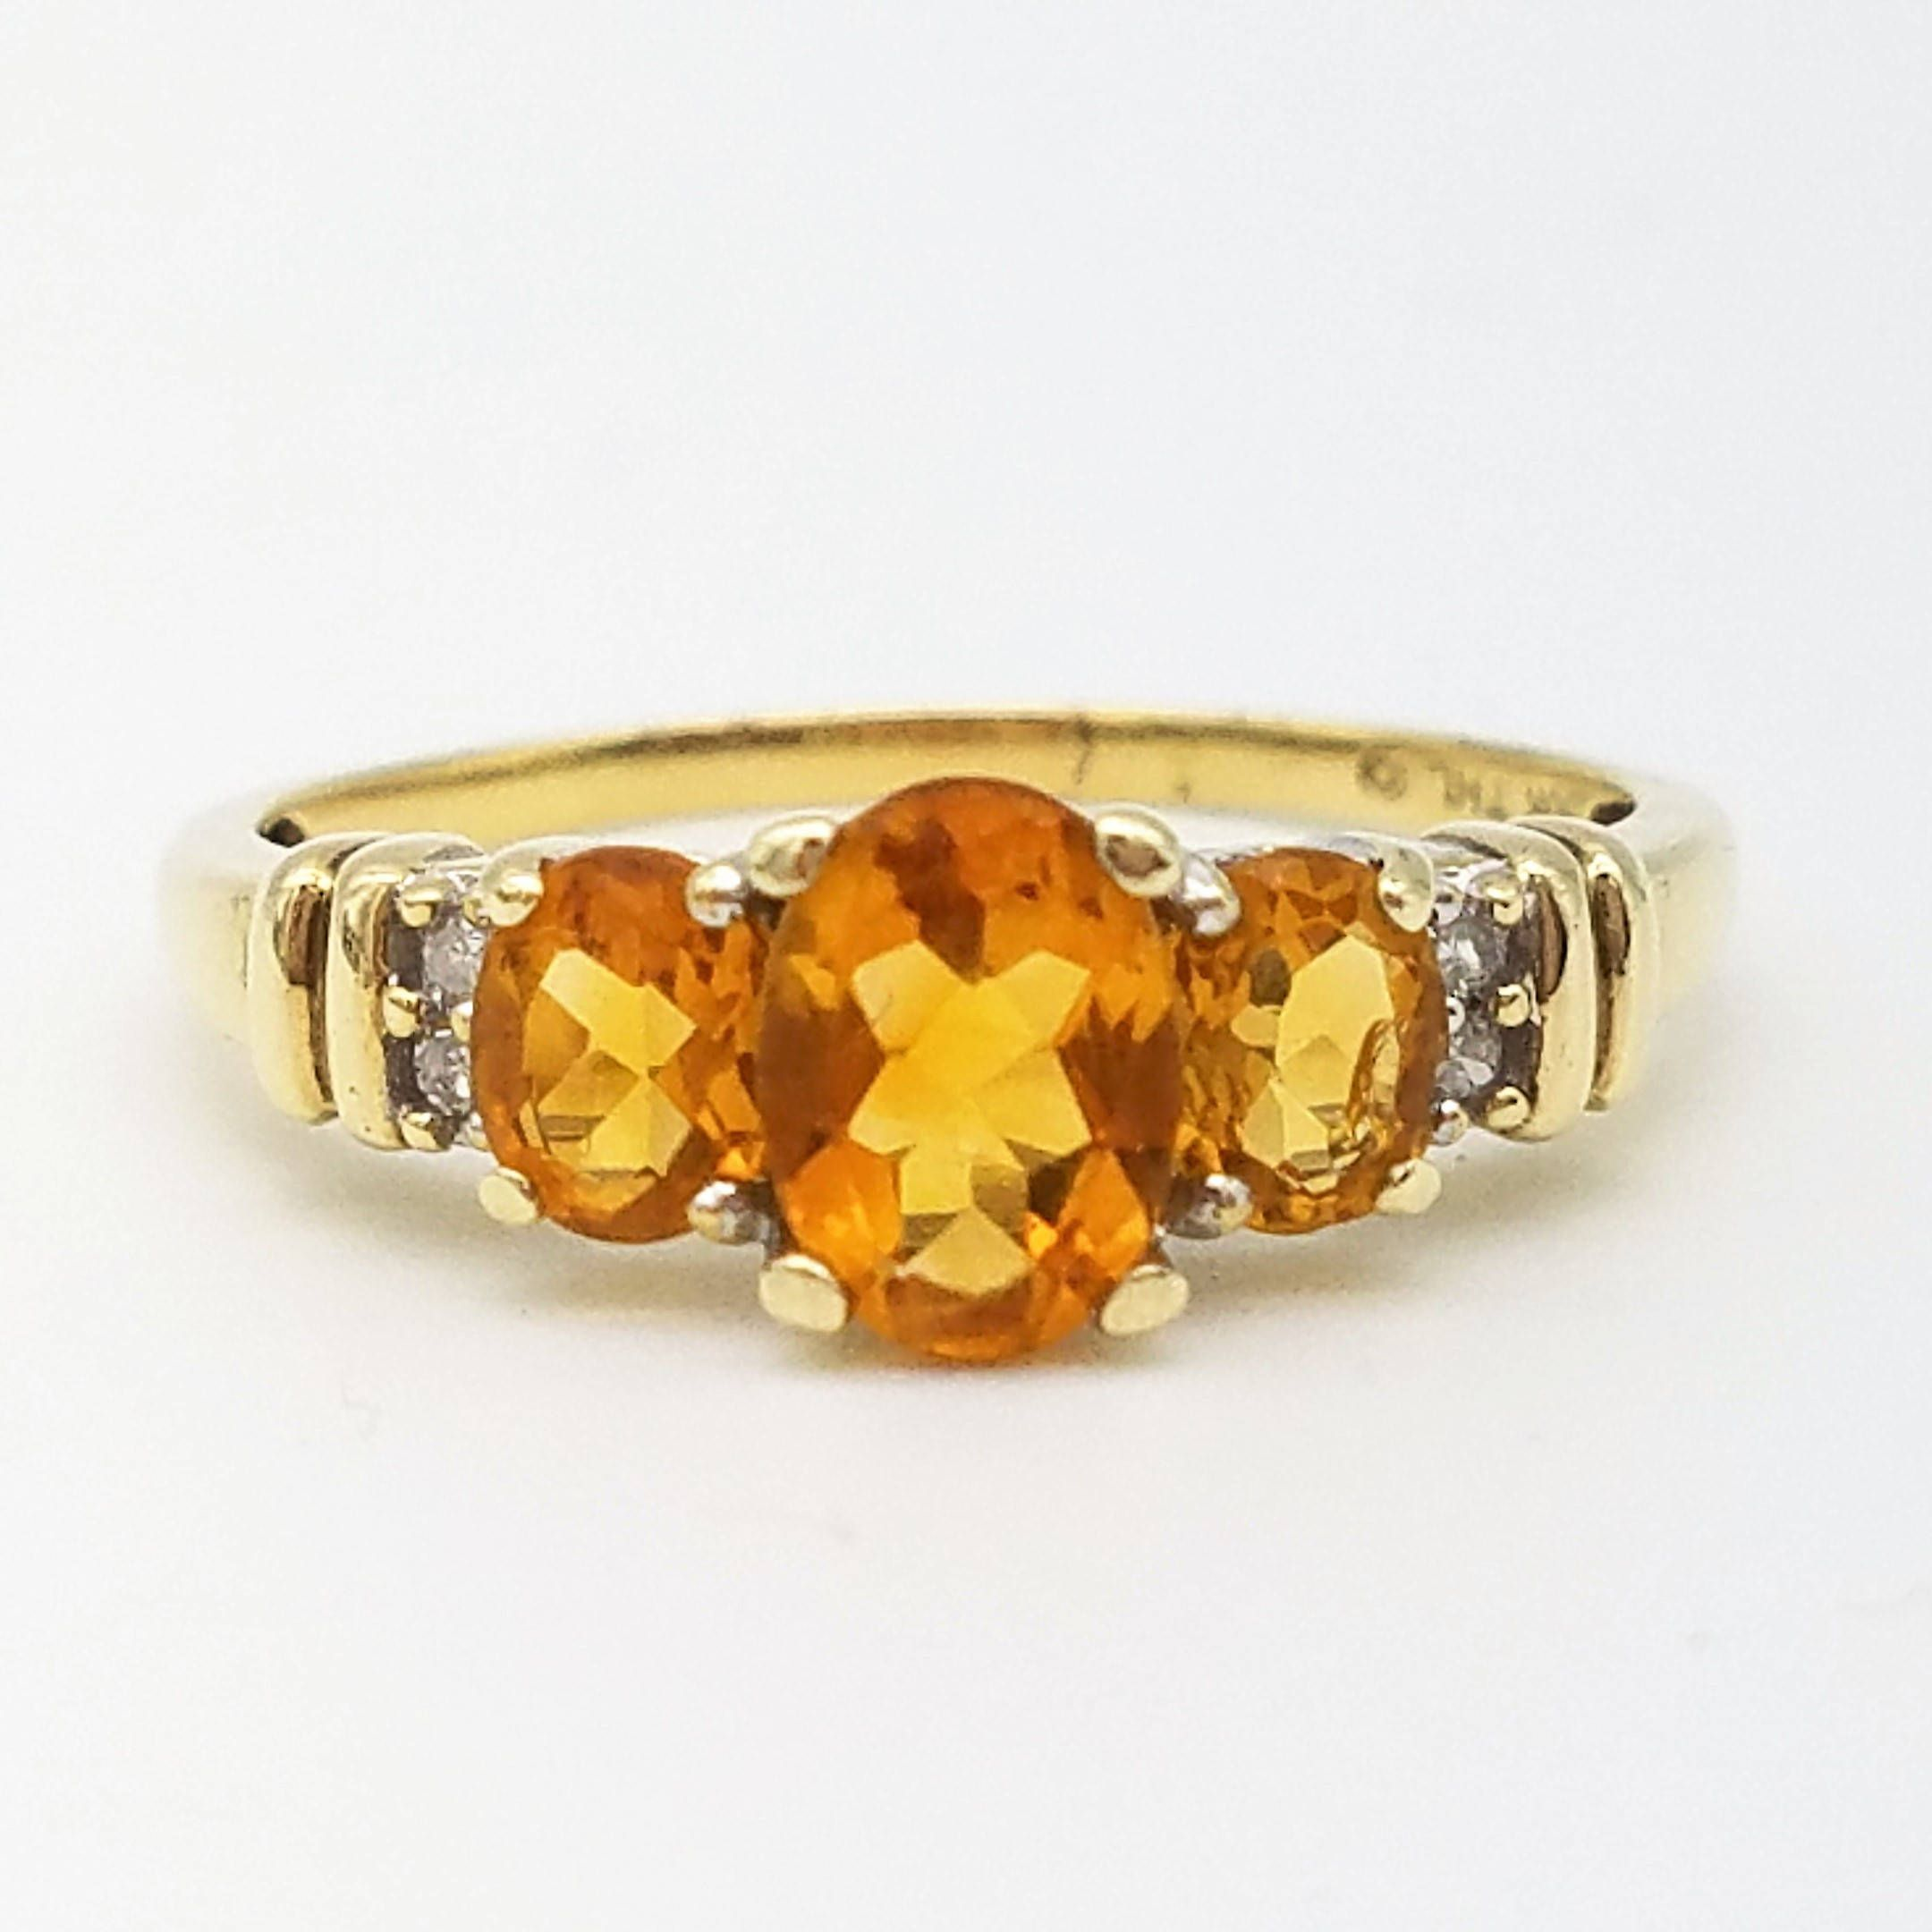 Vintage 3 Stone Orange Citrine Diamond Ring In 10k Yellow Gold By Thingsgrandmakept1 On Etsy Yellow Gold Citrine Rings